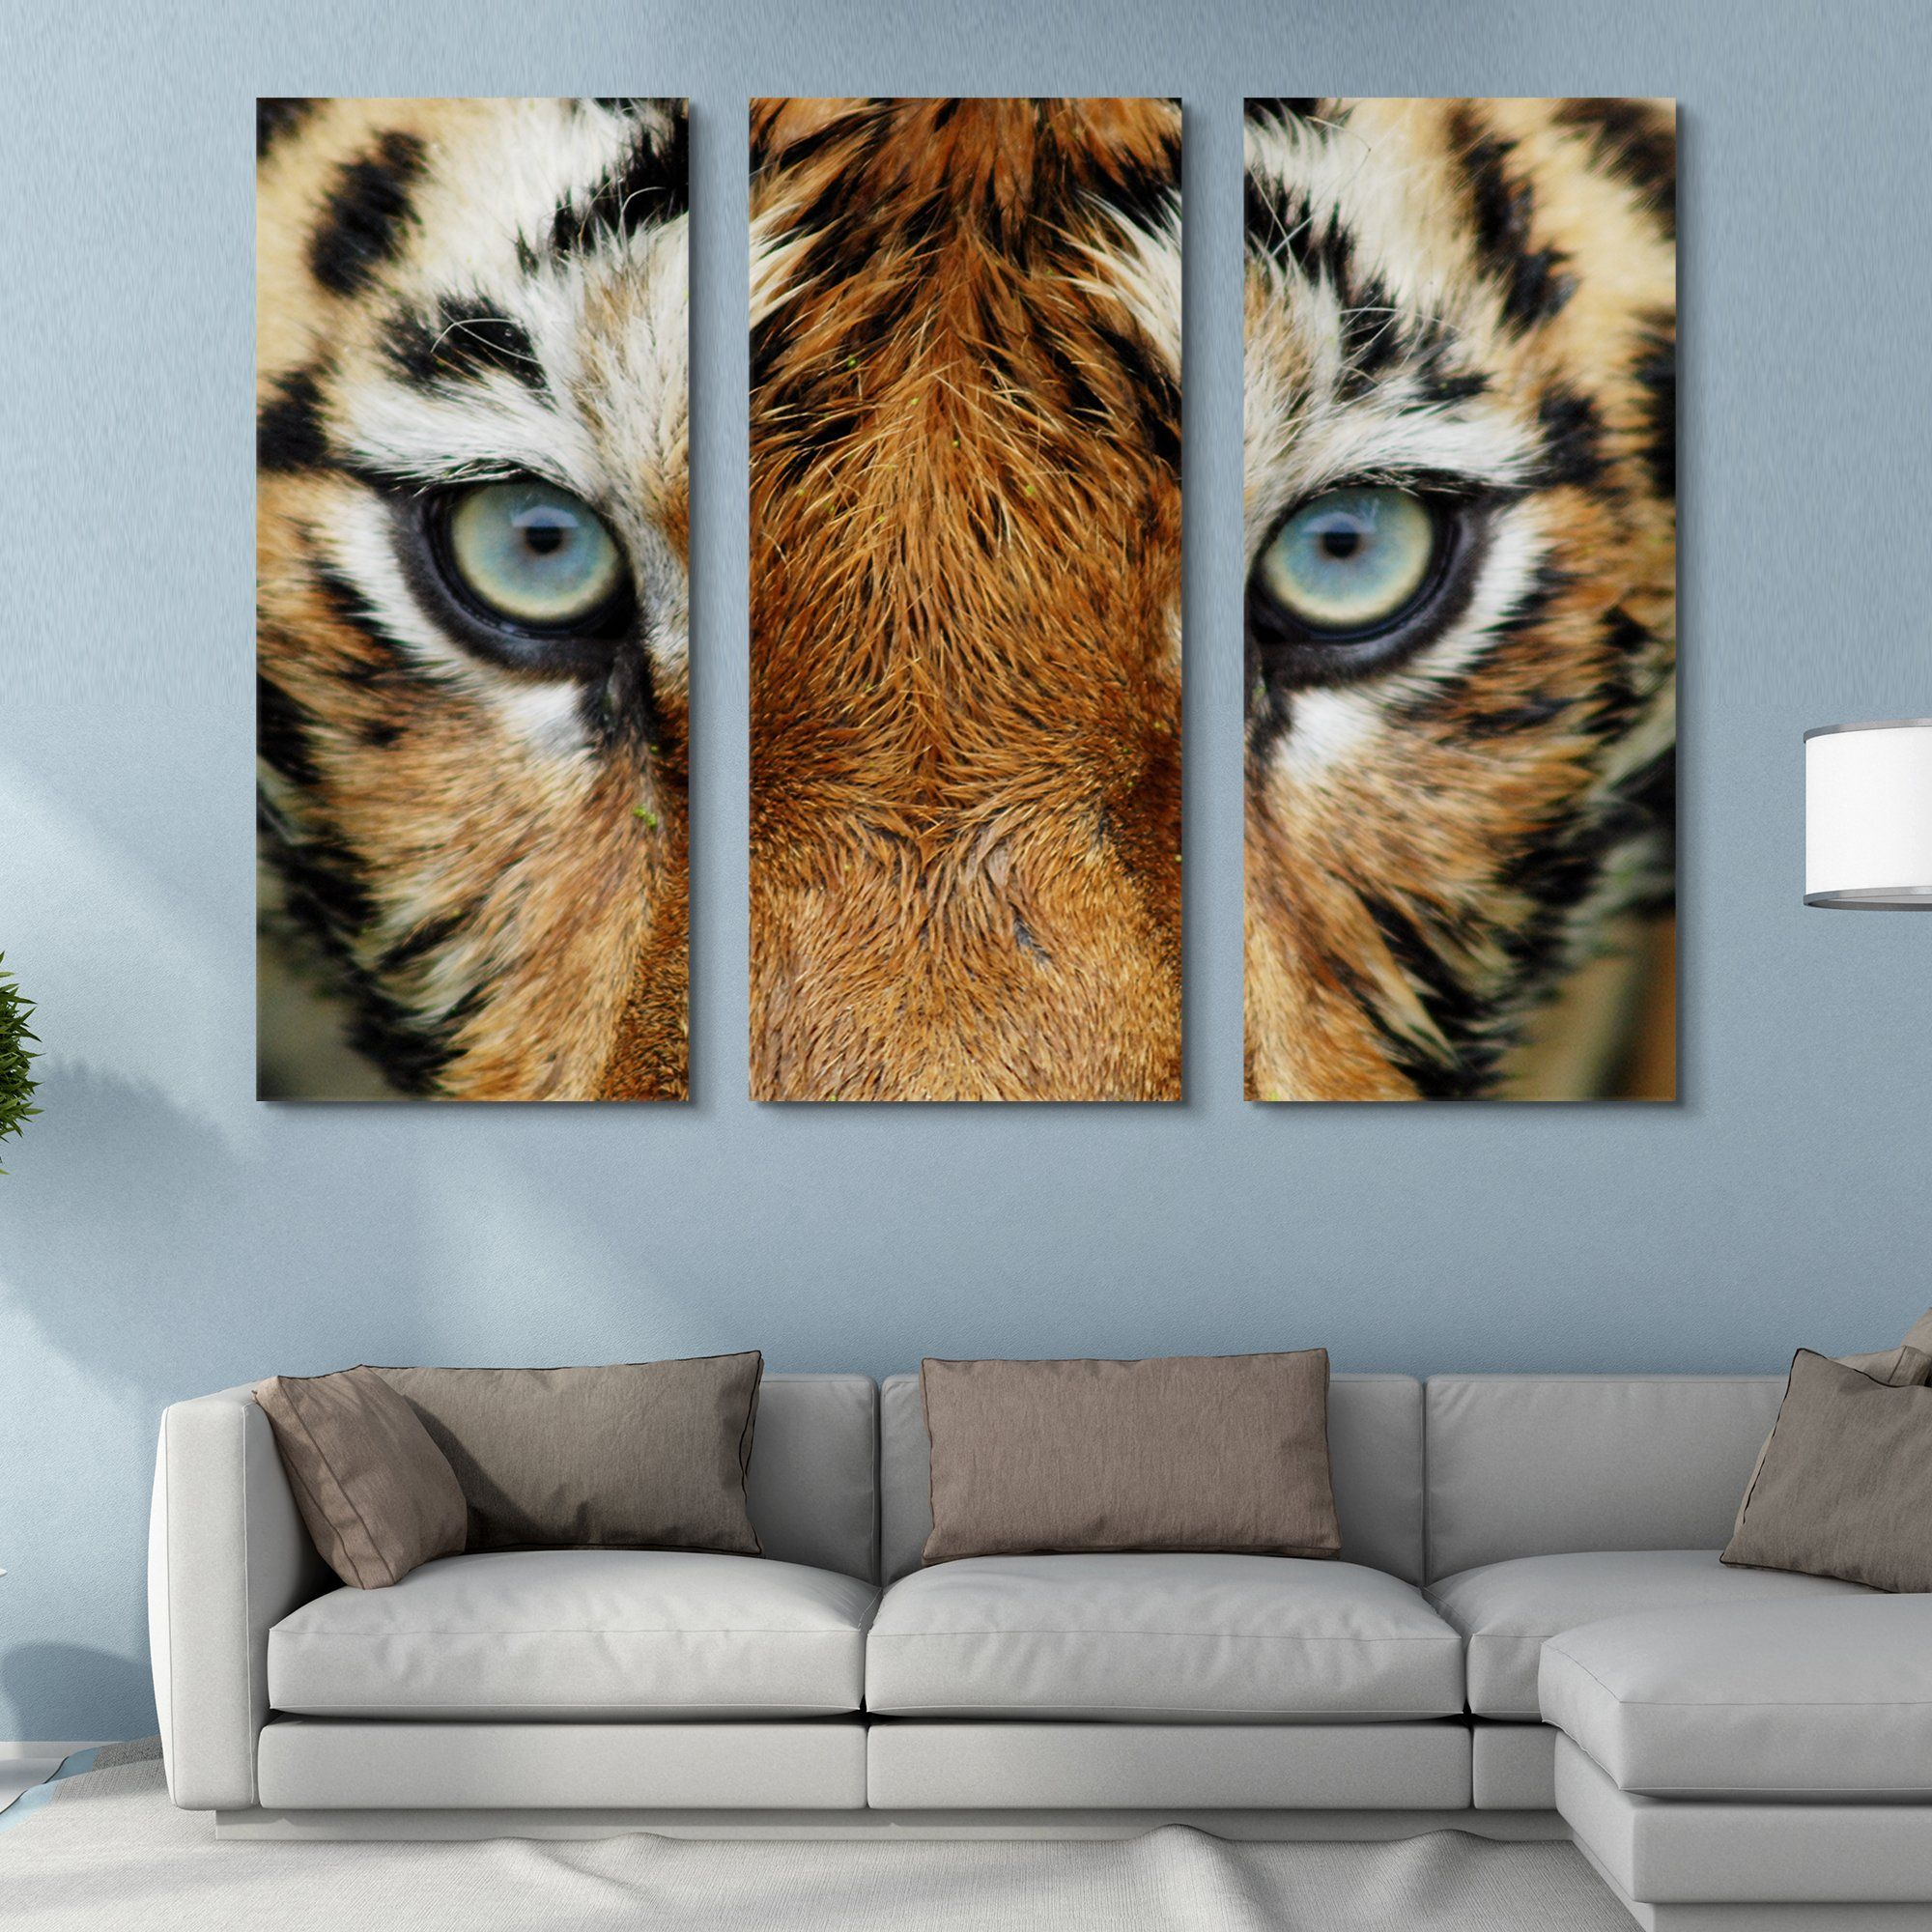 3 piece Tiger Eyes wall art